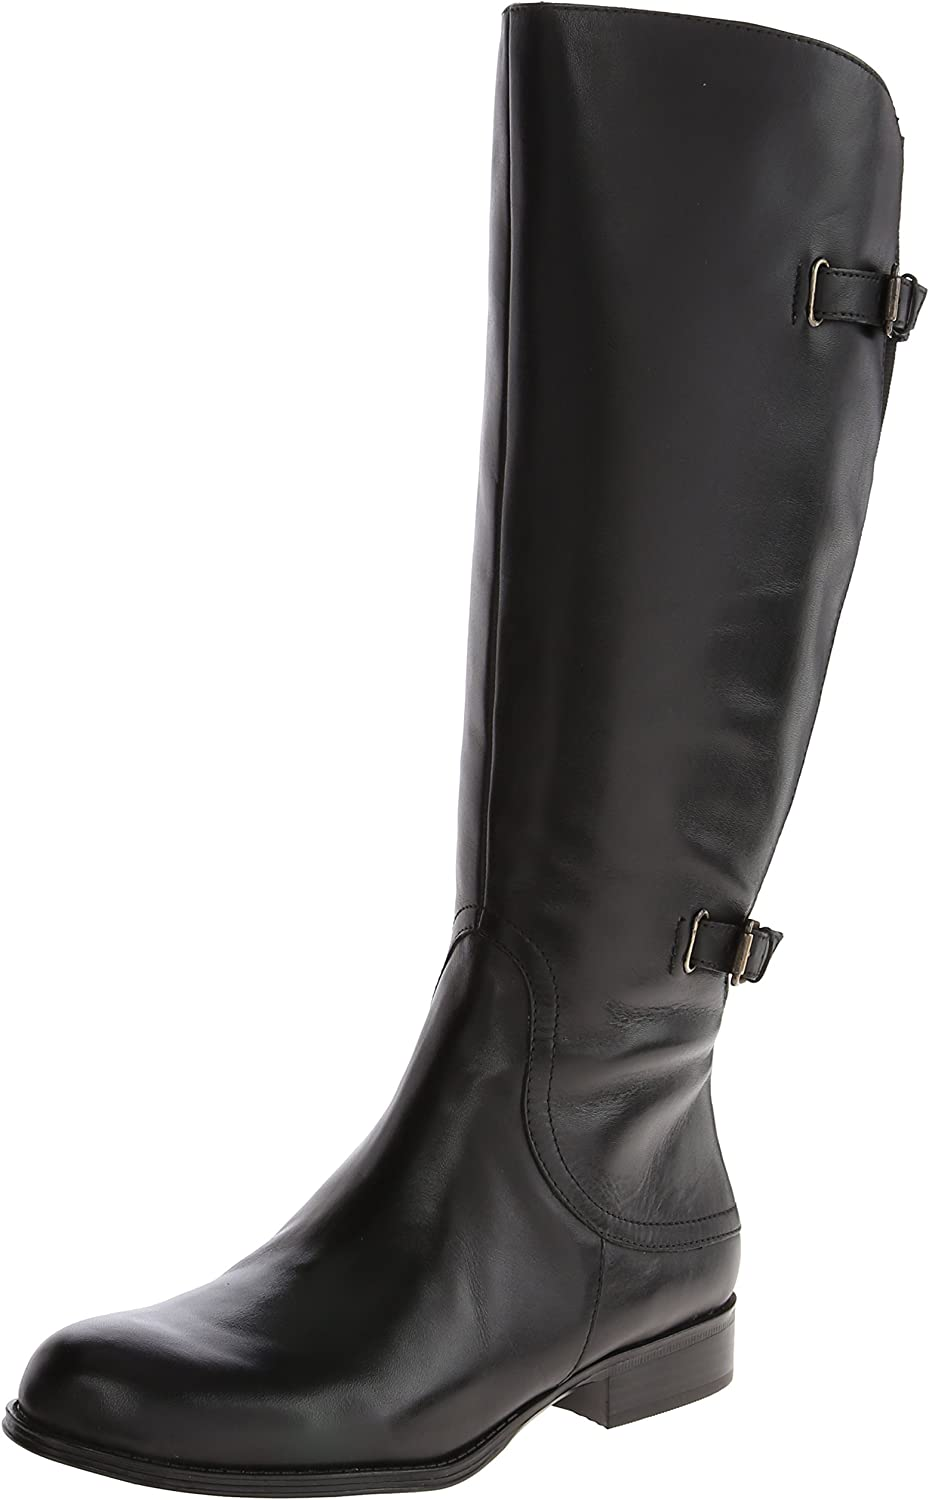 Naturalizer Womens Jamison Wide-Shaft Riding Boot